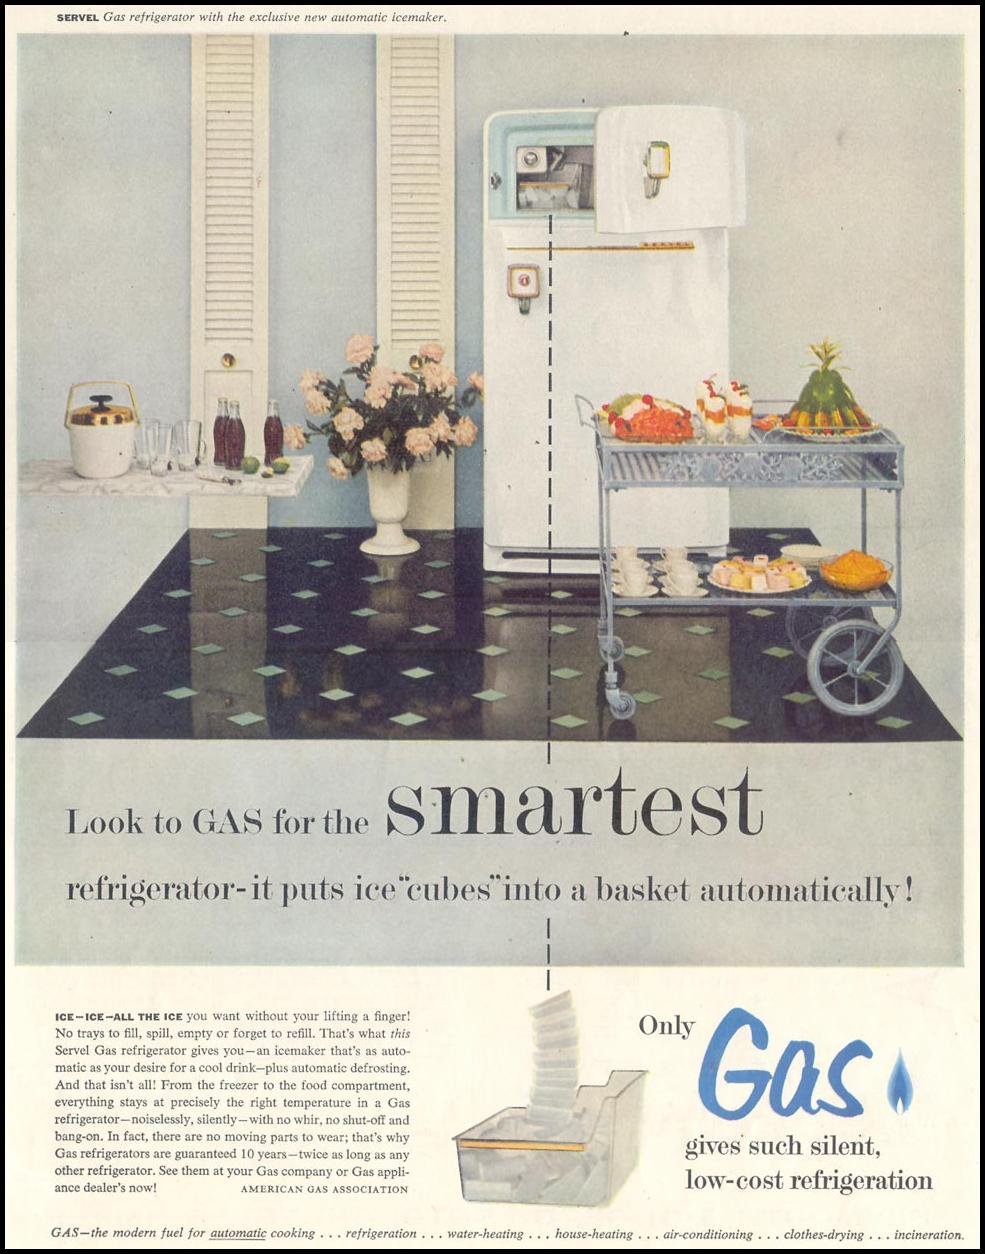 GAS REFRIGERATOR SATURDAY EVENING POST 07/23/1955 p. 7